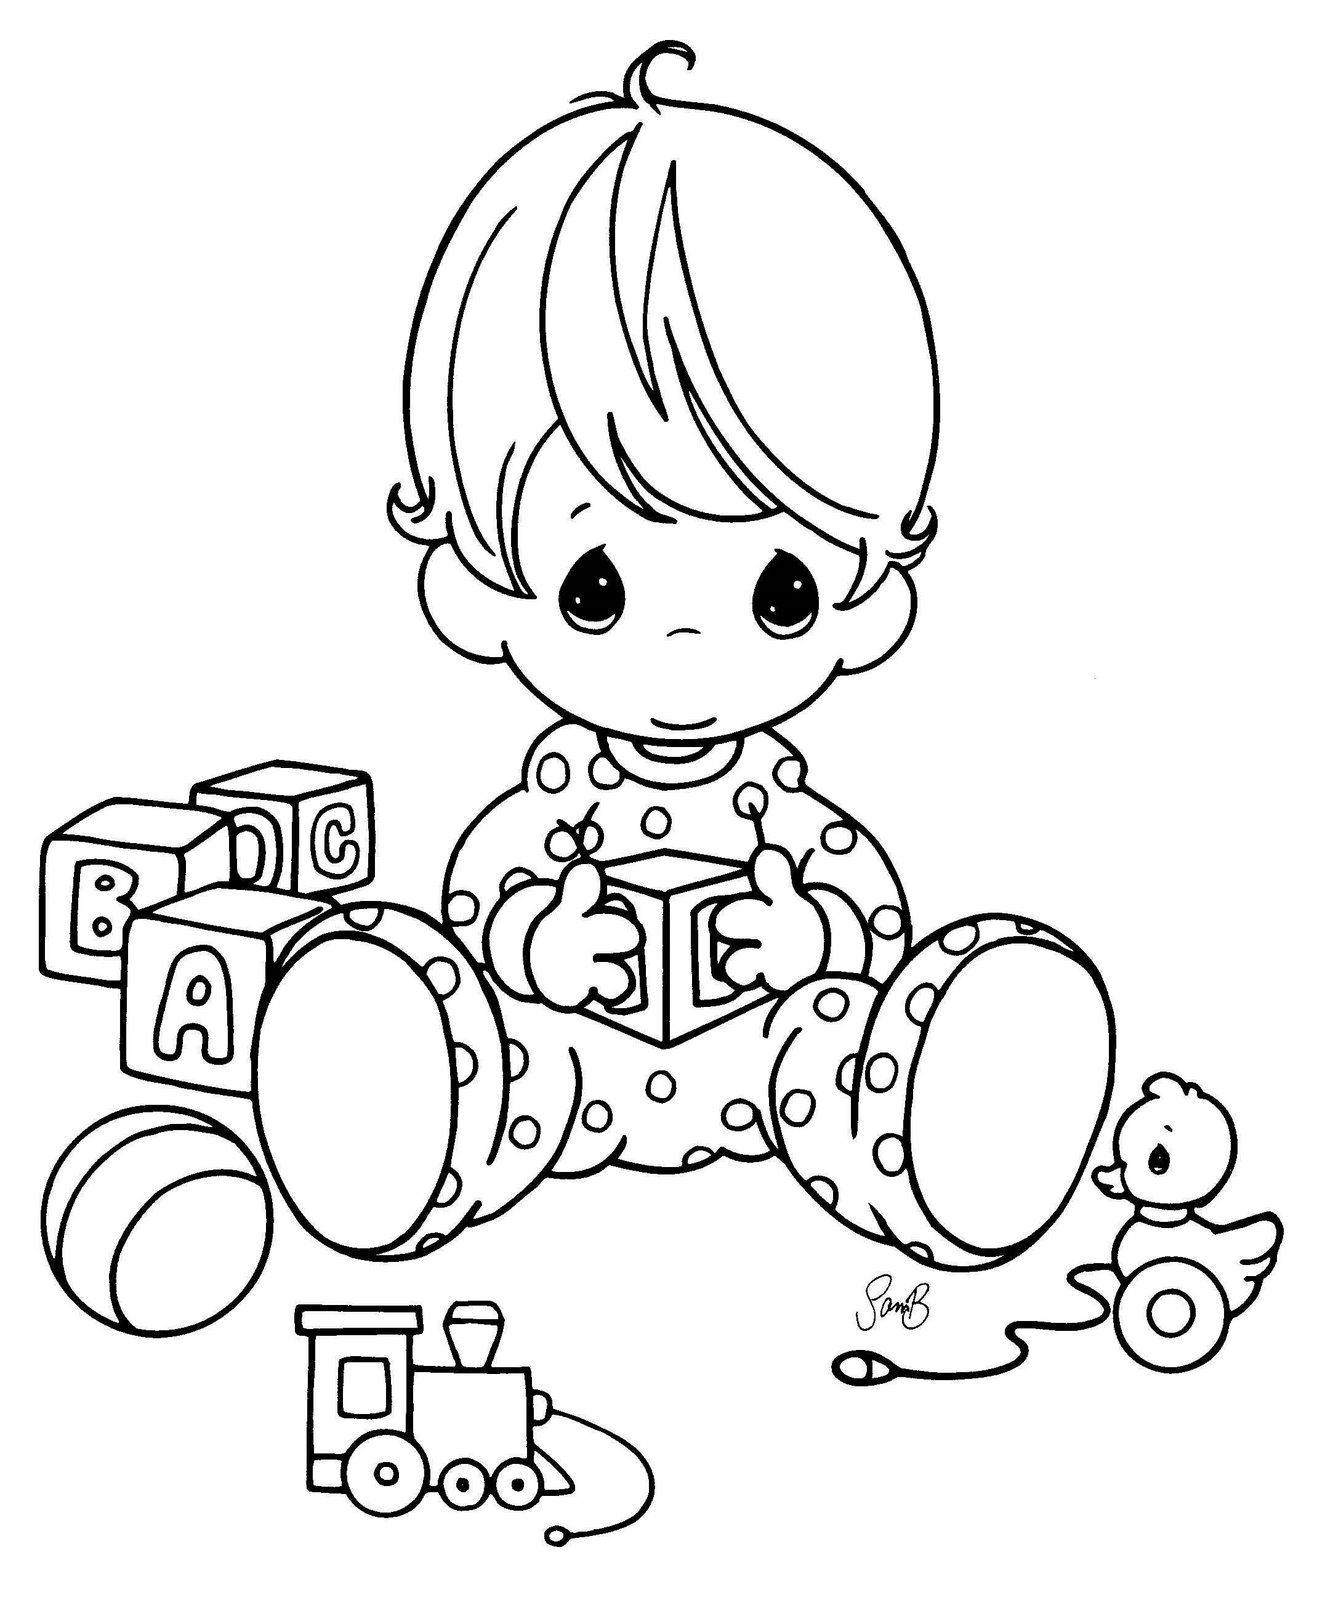 Baby Playing With His Toys Coloring Page